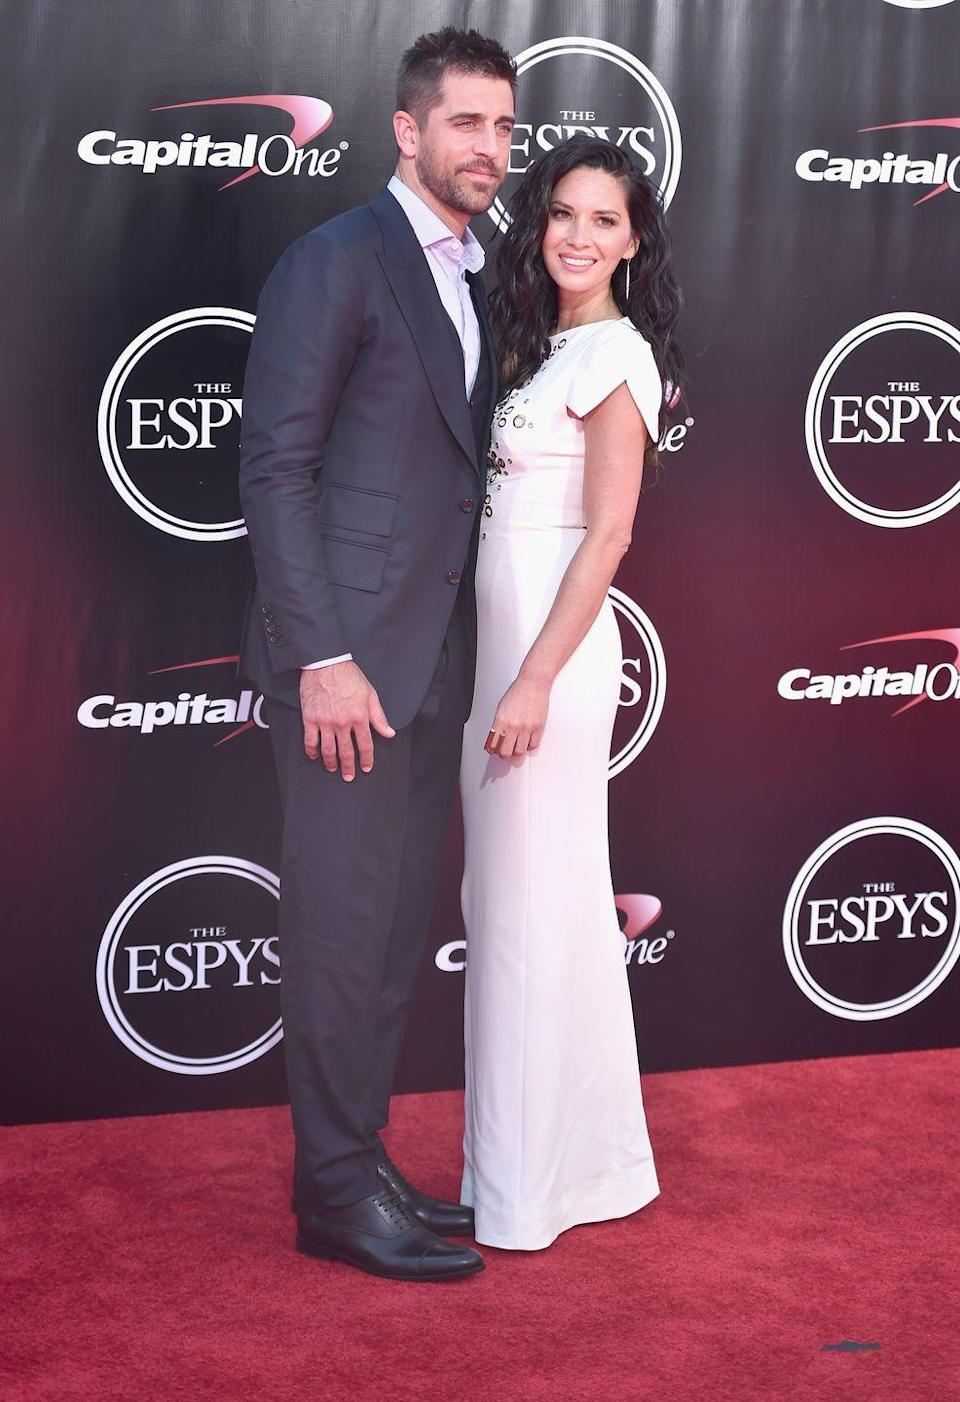 "<p>Before Green Bay Packers QB Aaron Rodgers started dating Danicka Patrick, he was seeing actress Olivia Munn. The couple started dating in 2014 and kept the relationship pretty lowkey—that is until his younger brother Jordan went on <em>The Bachelorette</em> and put <a href=""https://people.com/tv/aaron-rodgers-family-feud-brother-jordan-rodgers/"" rel=""nofollow noopener"" target=""_blank"" data-ylk=""slk:family drama in the spotlight"" class=""link rapid-noclick-resp"">family drama in the spotlight</a>. The same year they sparked engagement rumors, Olivia and Aaron <a href=""https://people.com/celebrity/olivia-munn-aaron-rodgers-split/?xid=socialflow_twitter_peoplemag"" rel=""nofollow noopener"" target=""_blank"" data-ylk=""slk:called it quits in 2017"" class=""link rapid-noclick-resp"">called it quits in 2017</a>.</p>"